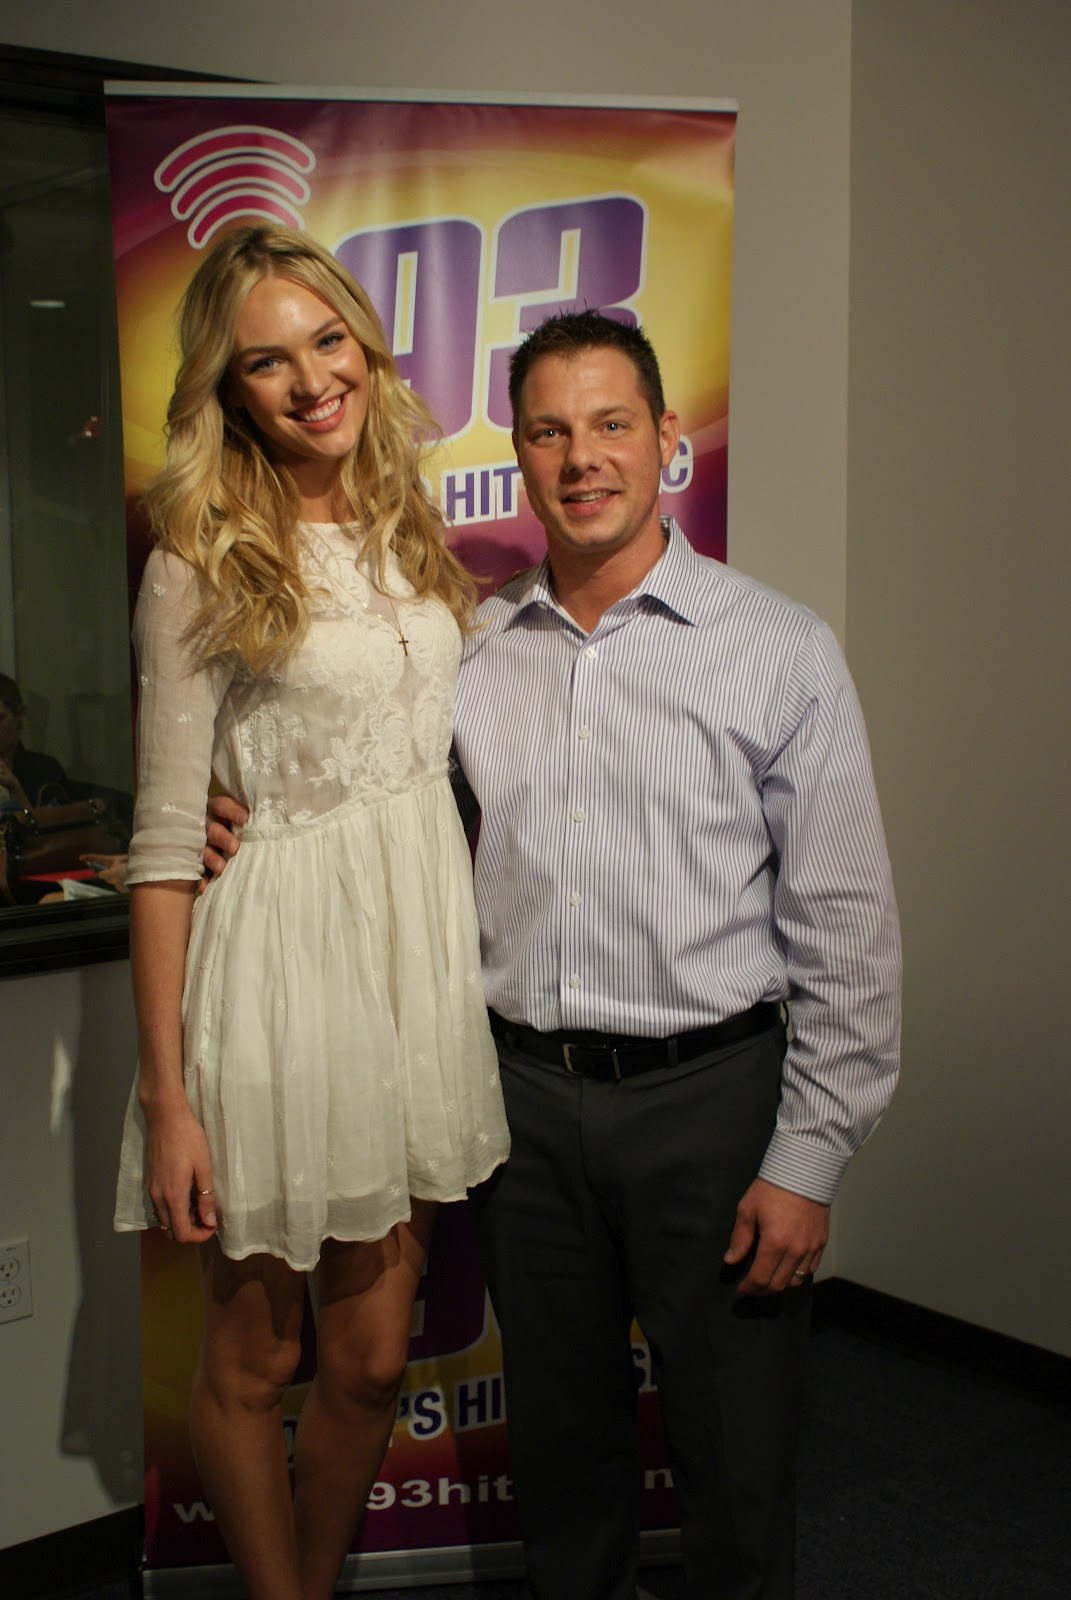 Candice Swanepoel at i93 Radio-04